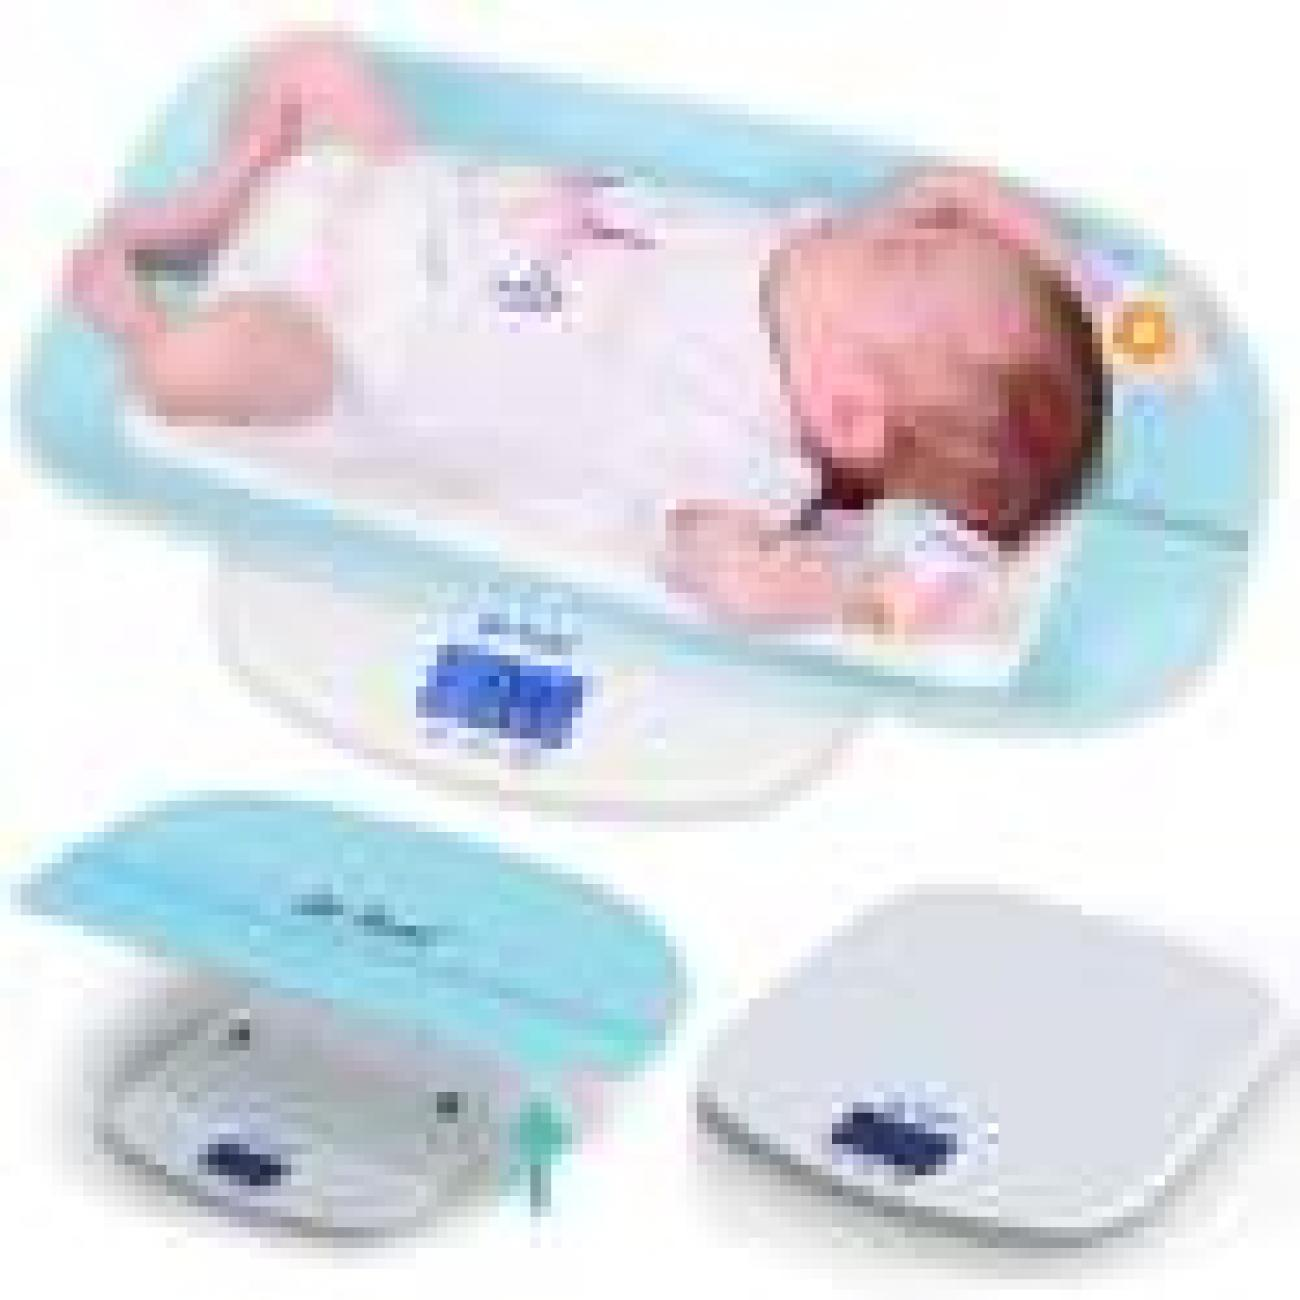 Baby_Weighing_Scale_(1)